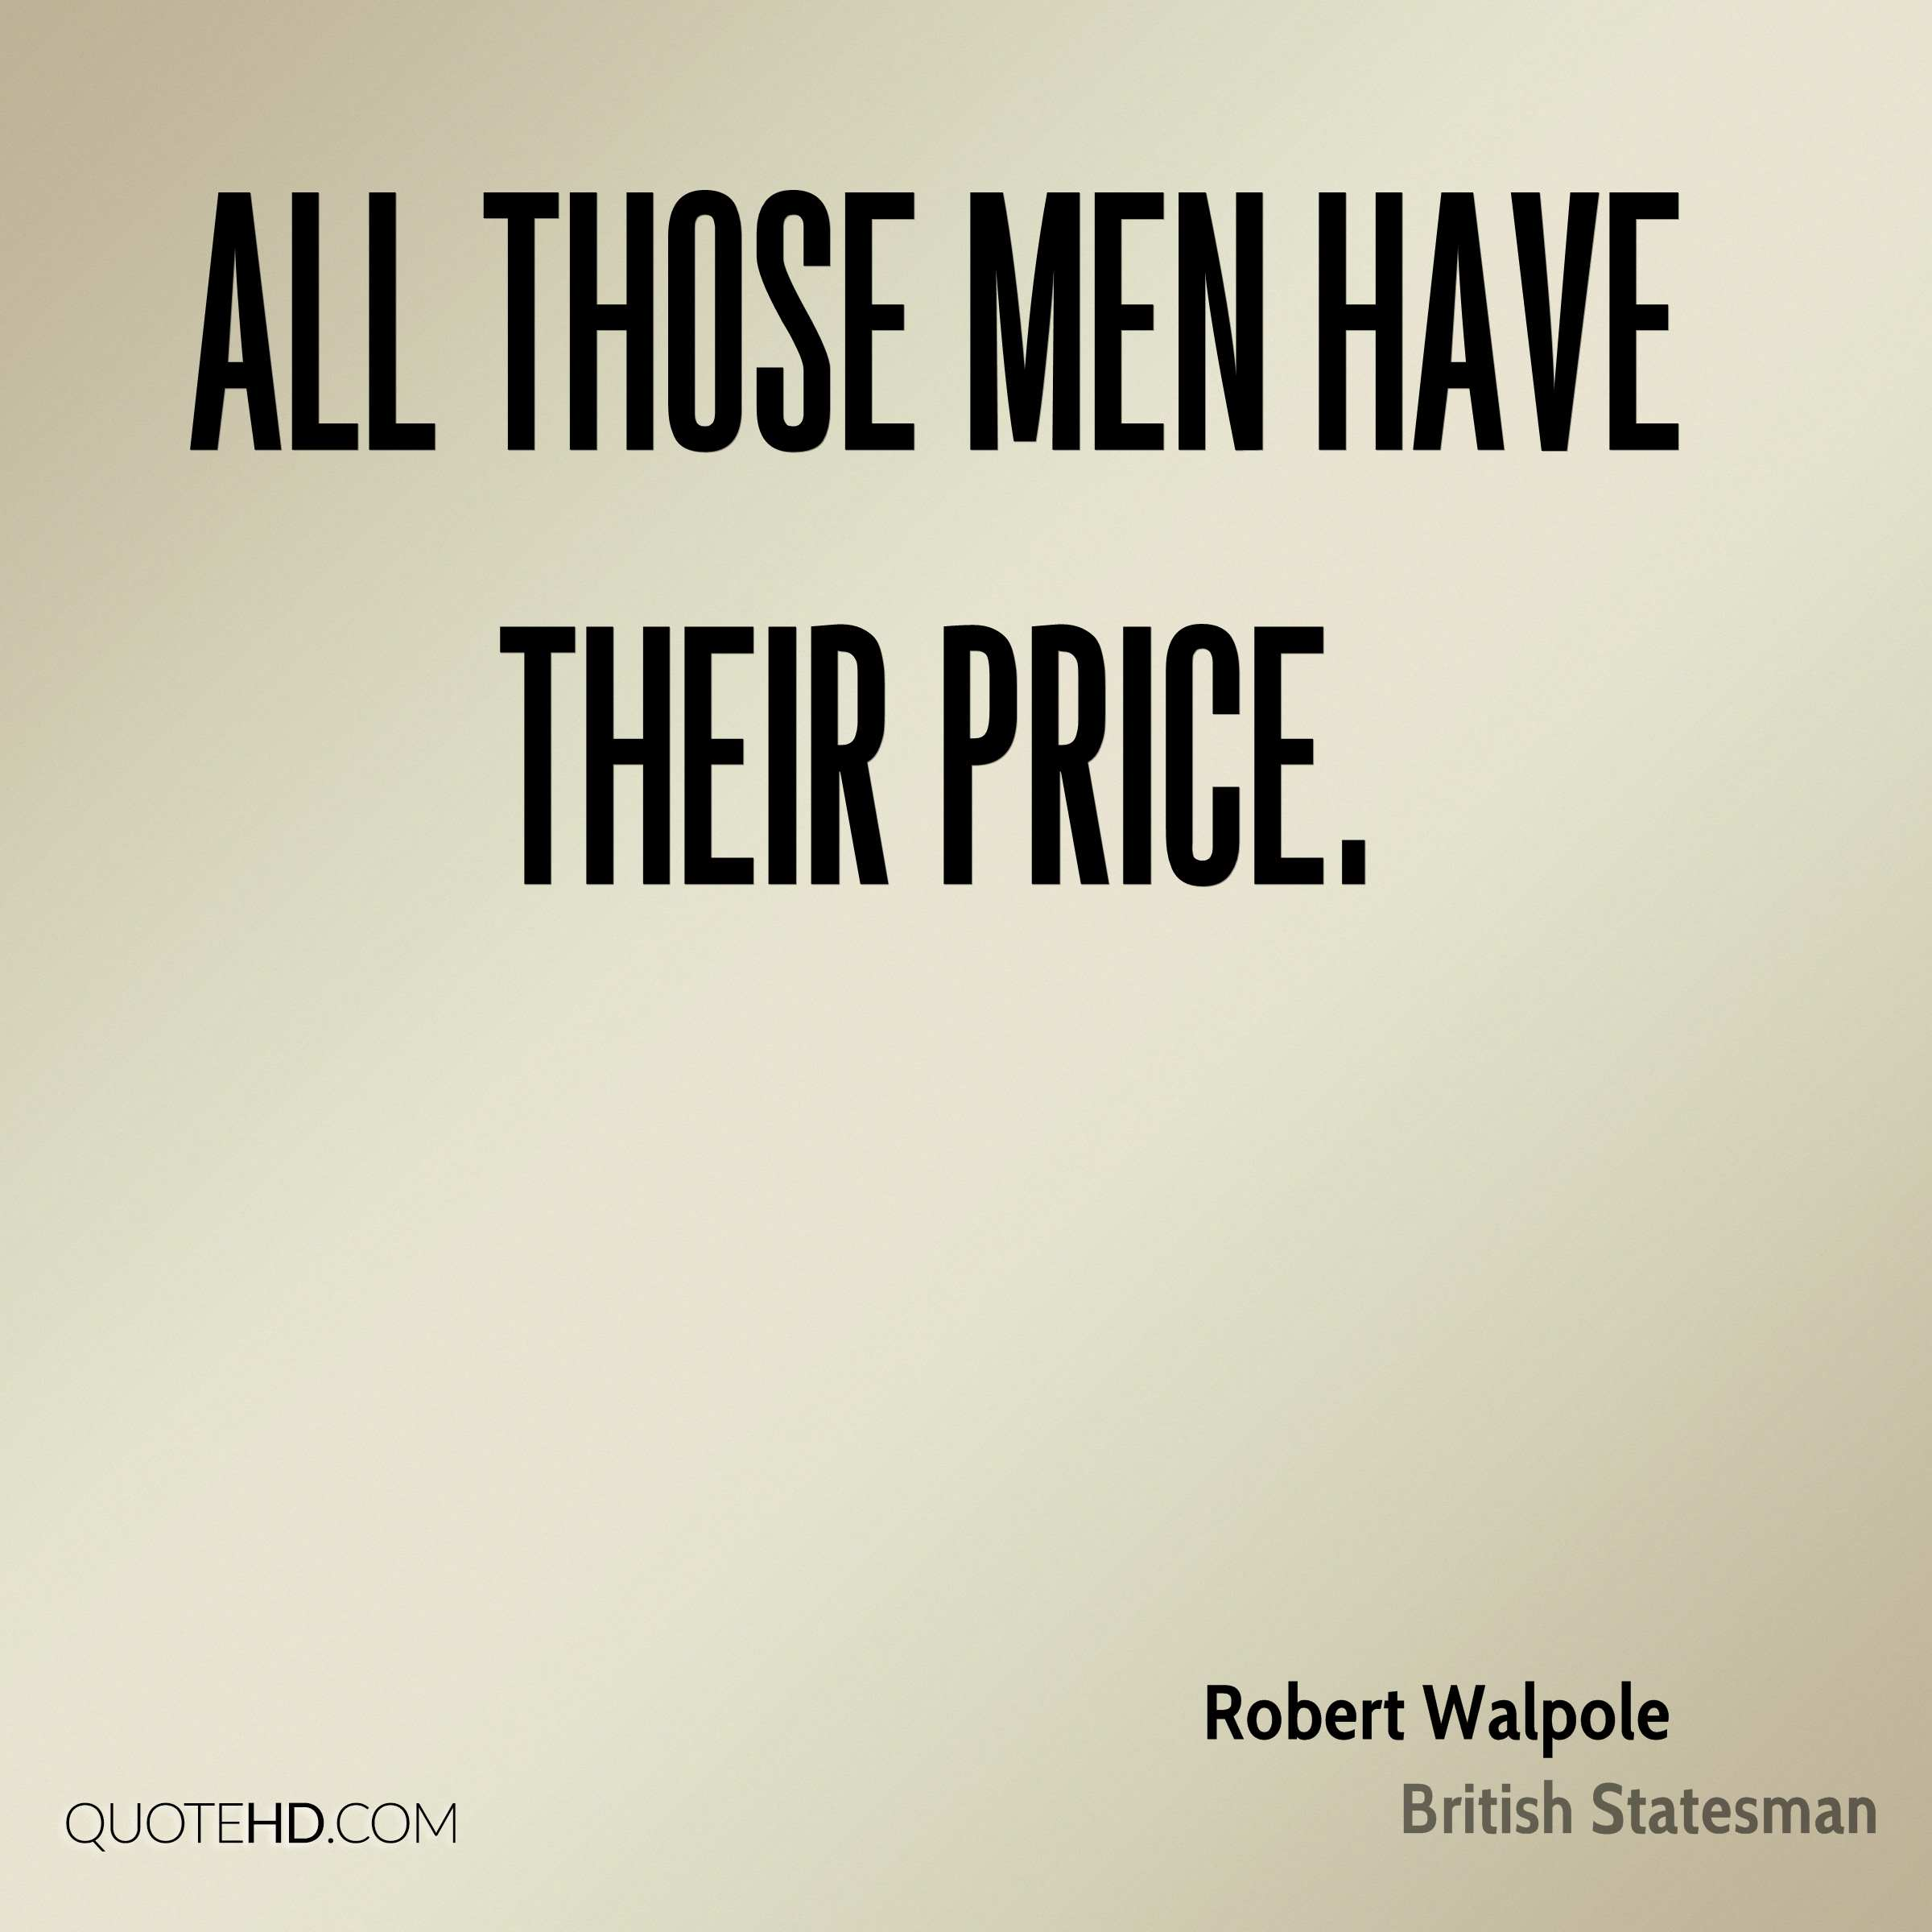 All those men have their price.